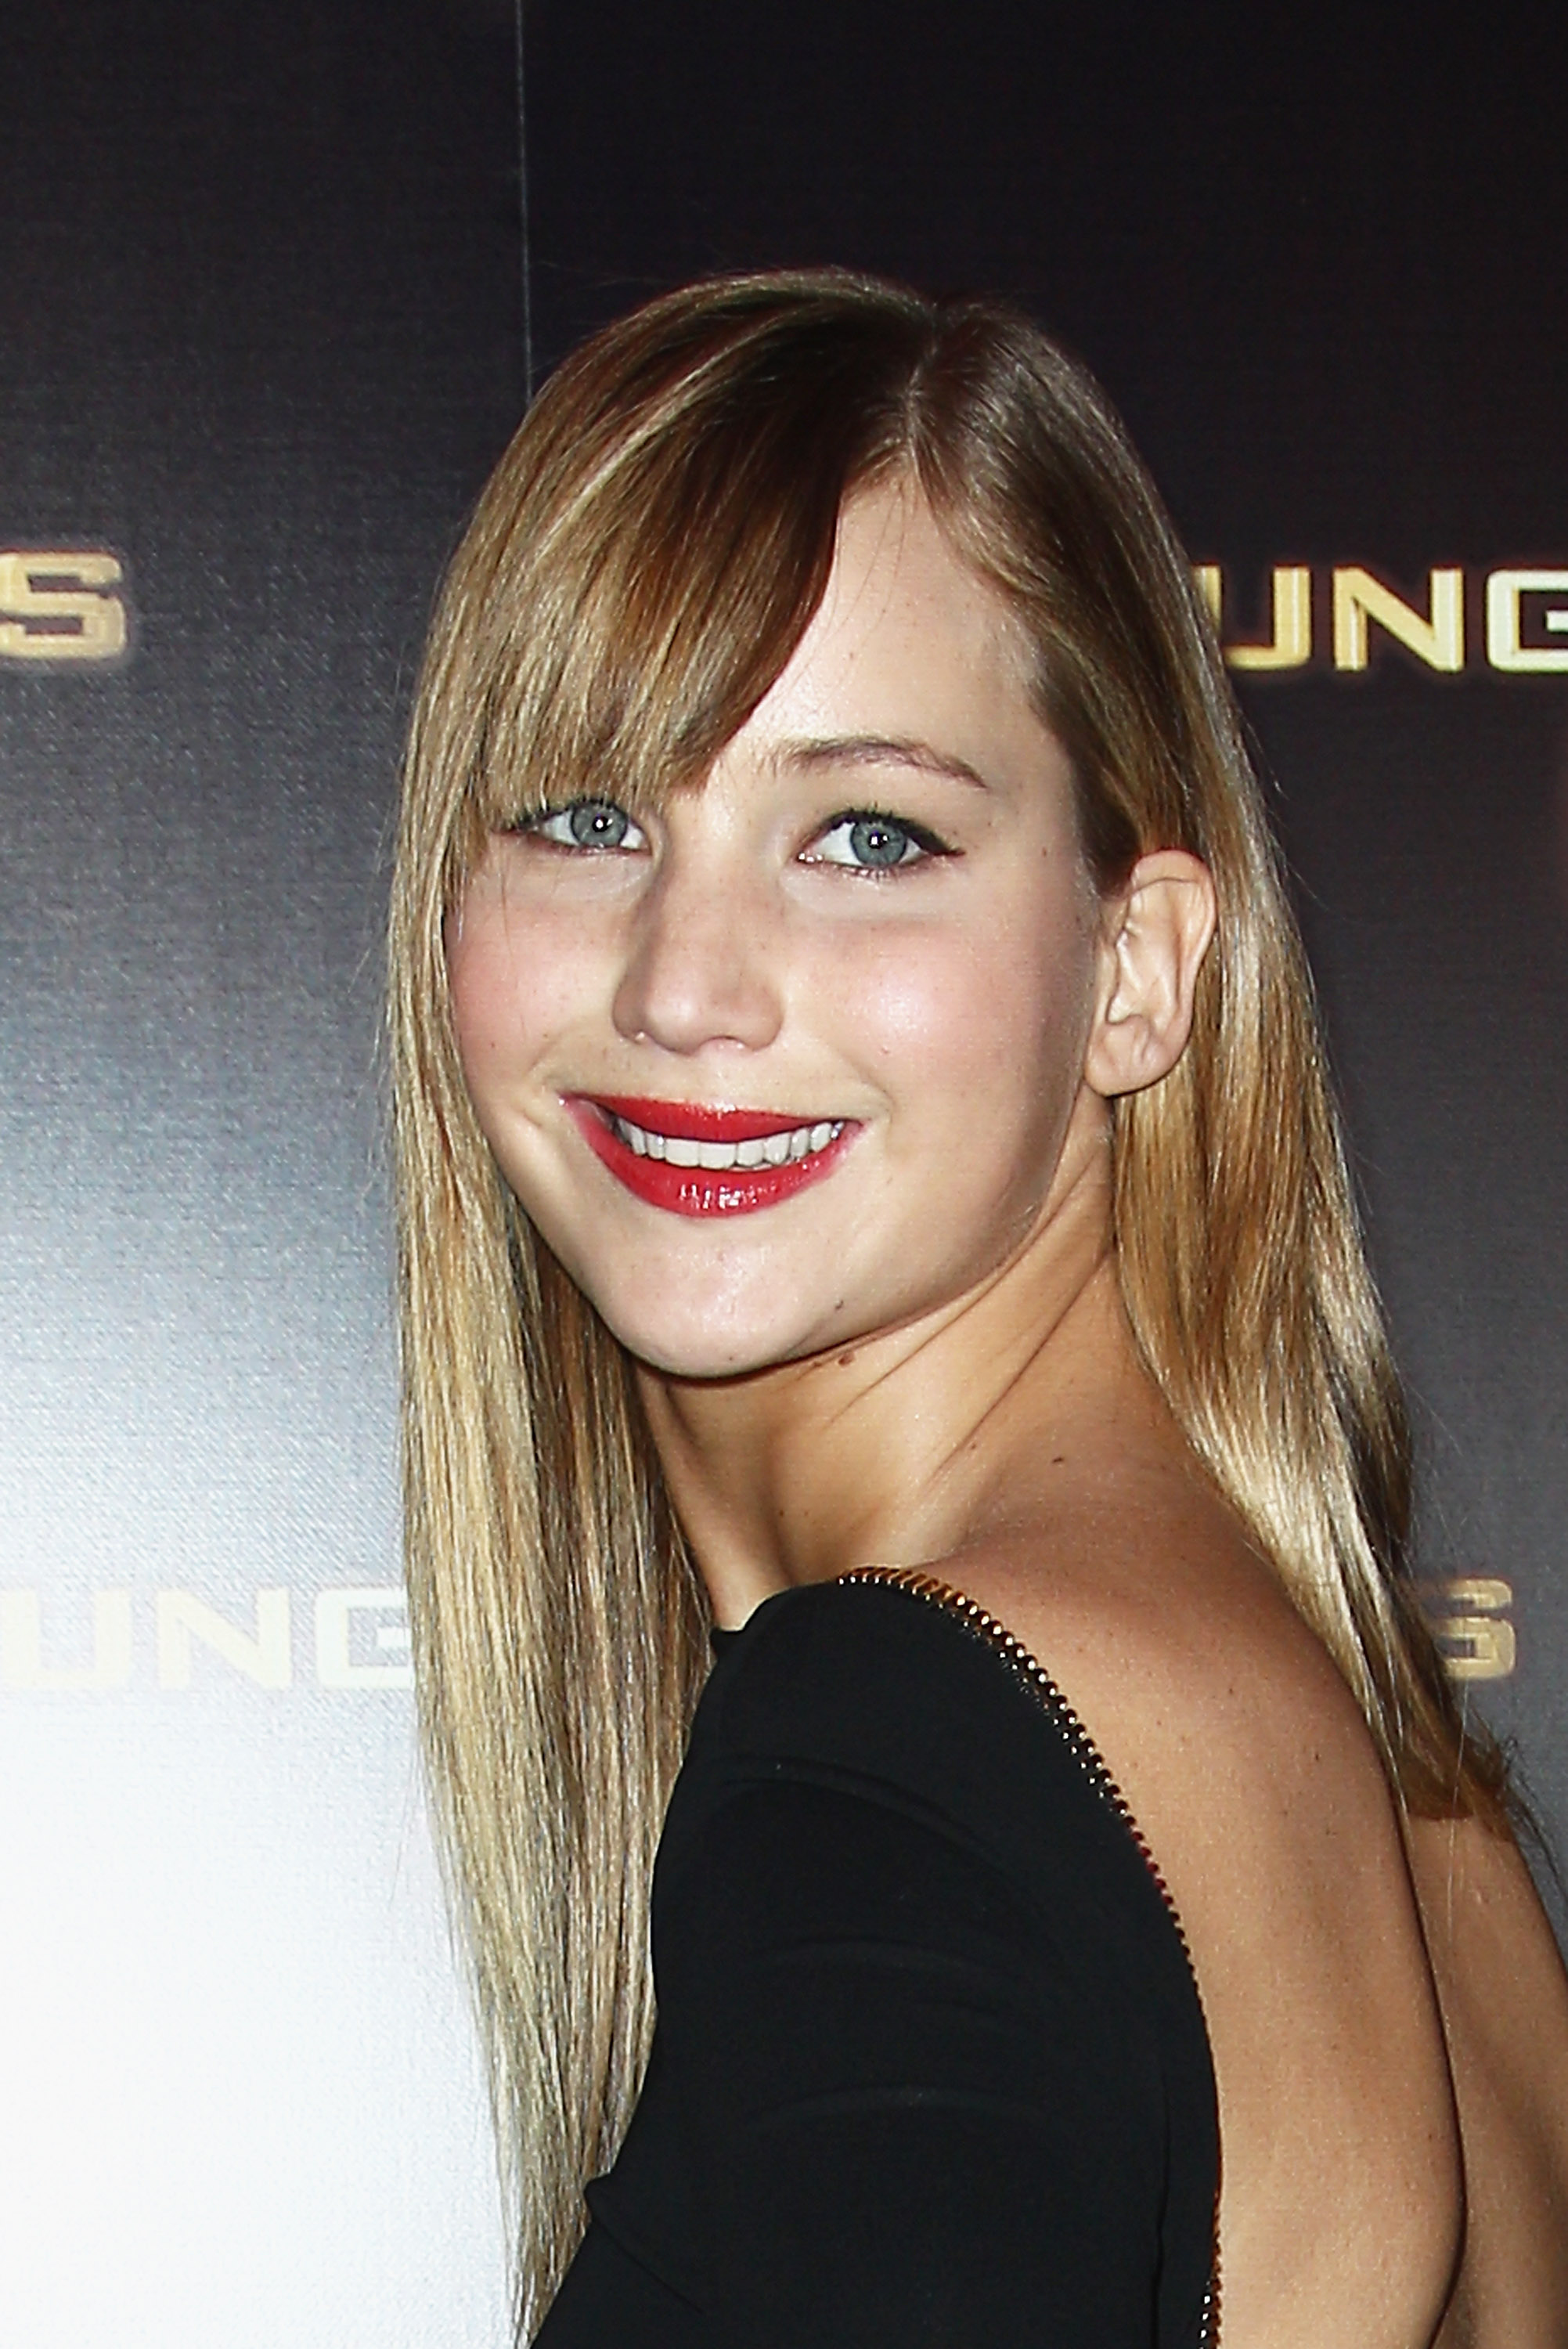 Jennifer Lawrence kept her hair down for the Paris premiere, finishing her beauty regiment with bold red lips and black eyeliner.